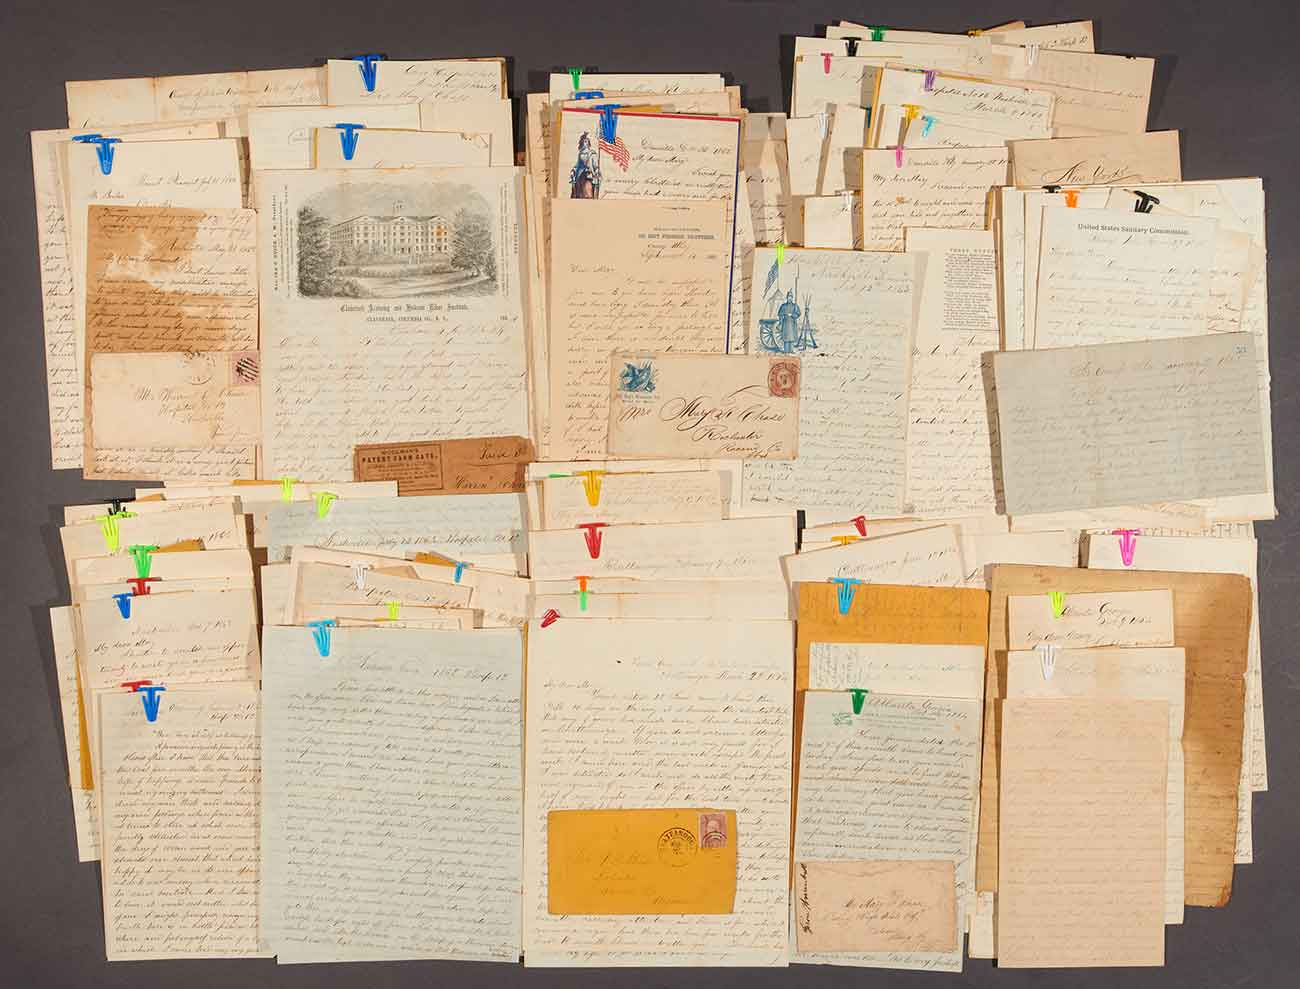 Correspondence of Warren D. Chase, 142 letters, 1862–1868. The Huntington Library, Art Collections, and Botanical Gardens.